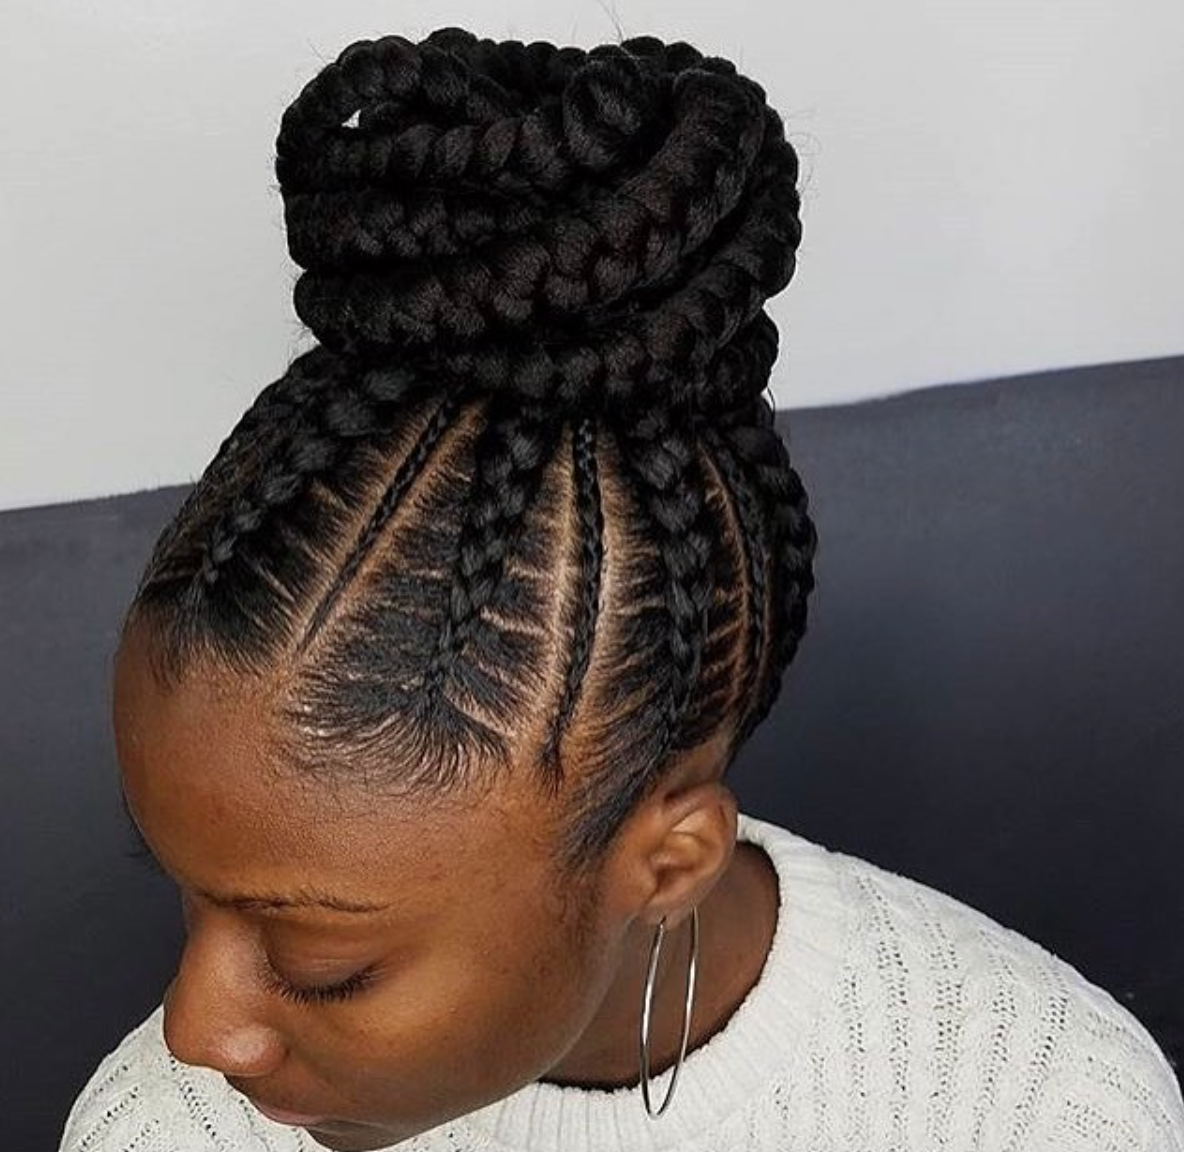 Pin By Tj West On Fun Protective Style Ideas Pinterest Braids